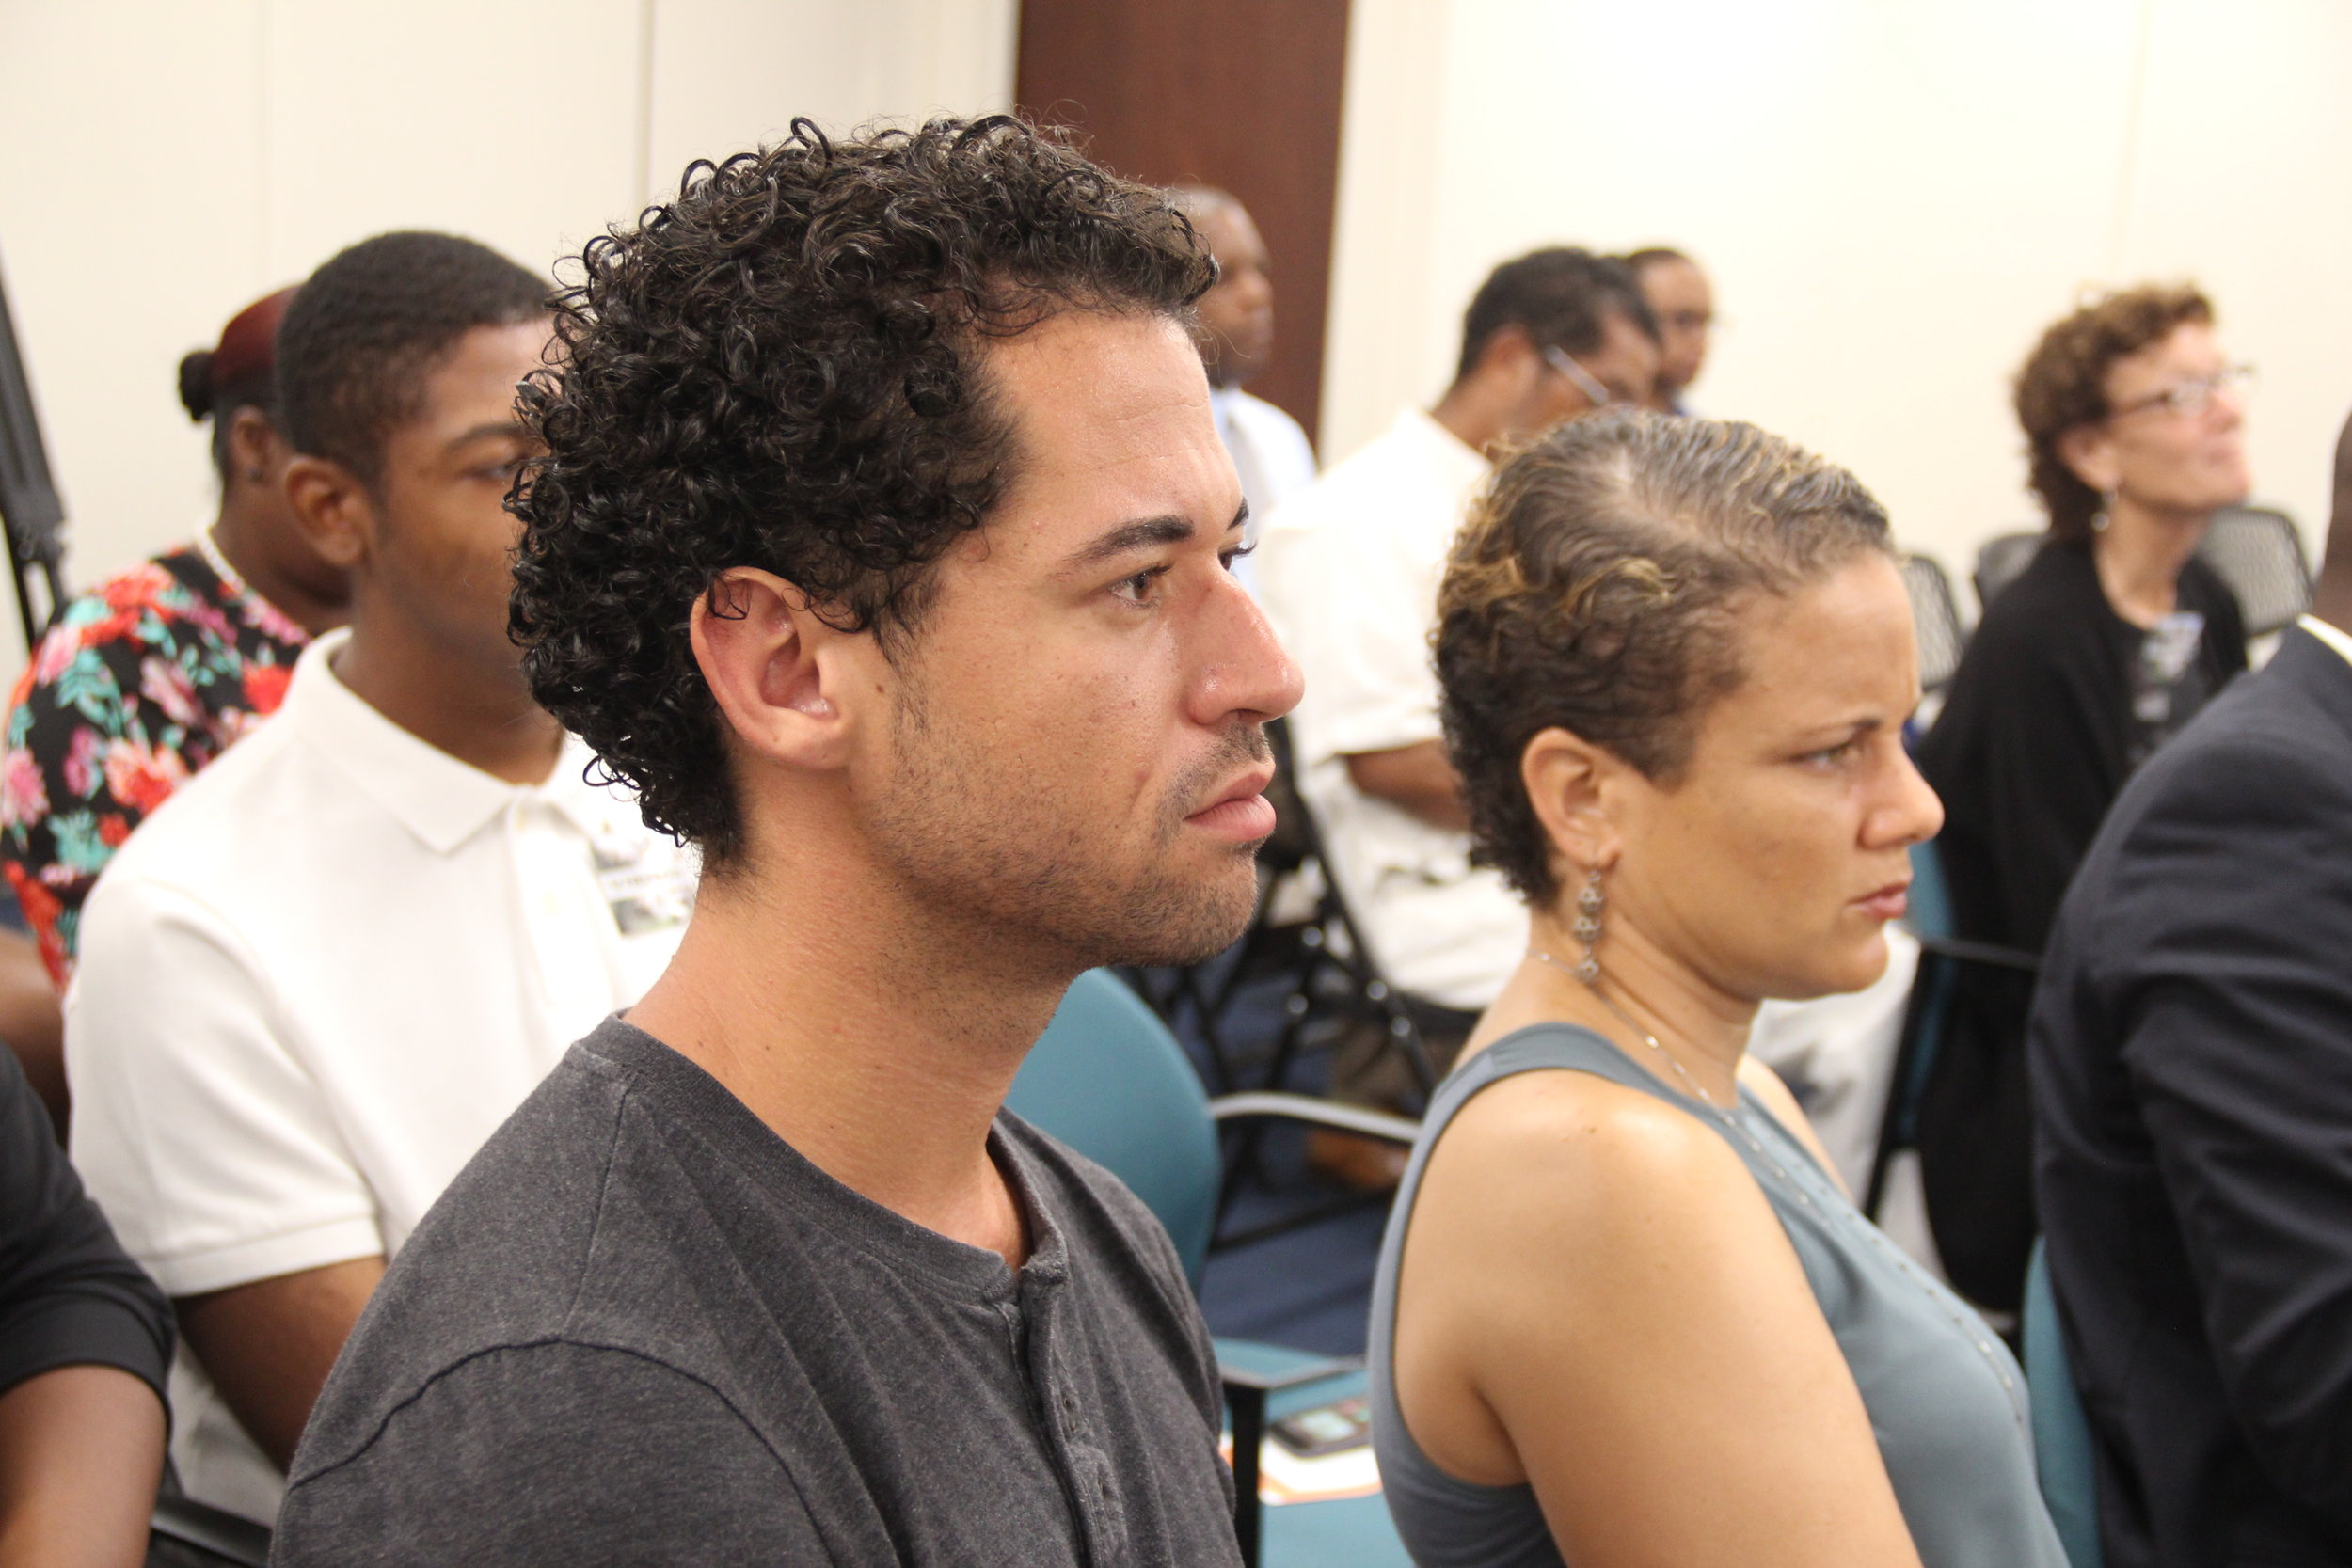 Attendees Alistair Stevenson and Katrina Cartwright at The Orange Economy Webinar produced by Creative Nassau in partnership with the Inter-American Development Bank and the Central Bank of The Bahamas. Image courtesy of Creative Nassau and Rosemary C. Hanna.